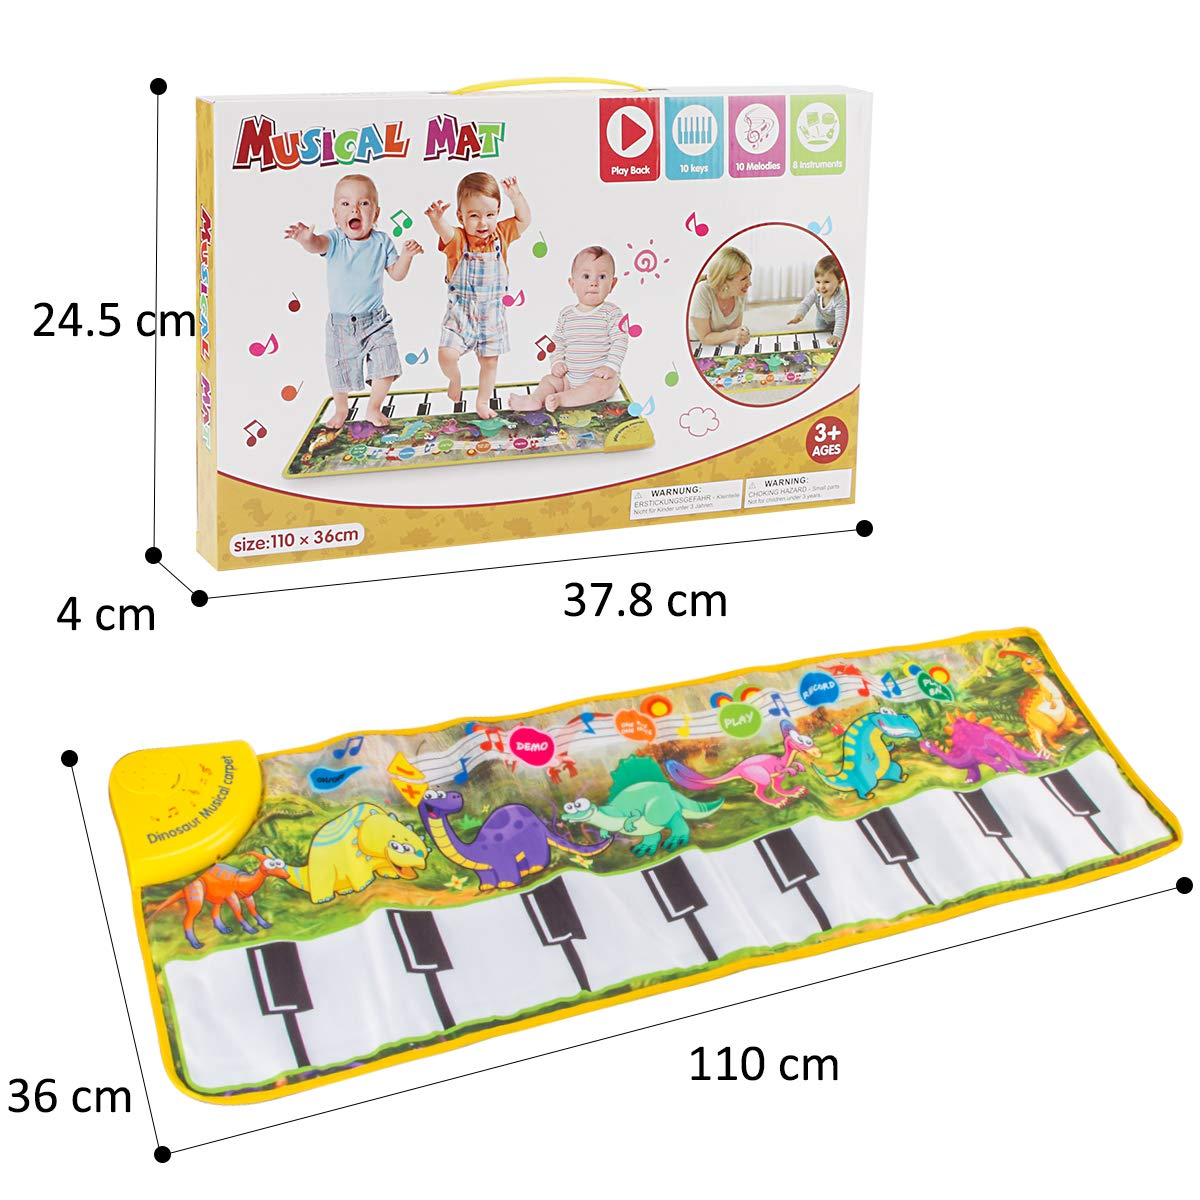 Piano Mat, Tencoz Musical Piano Mat with 8 Dinosaurs Sounds Portable Electronic Educational Musical Blanket Dinosaur Toys Gifts for Kids Toddler Girls Boys by Tencoz (Image #7)